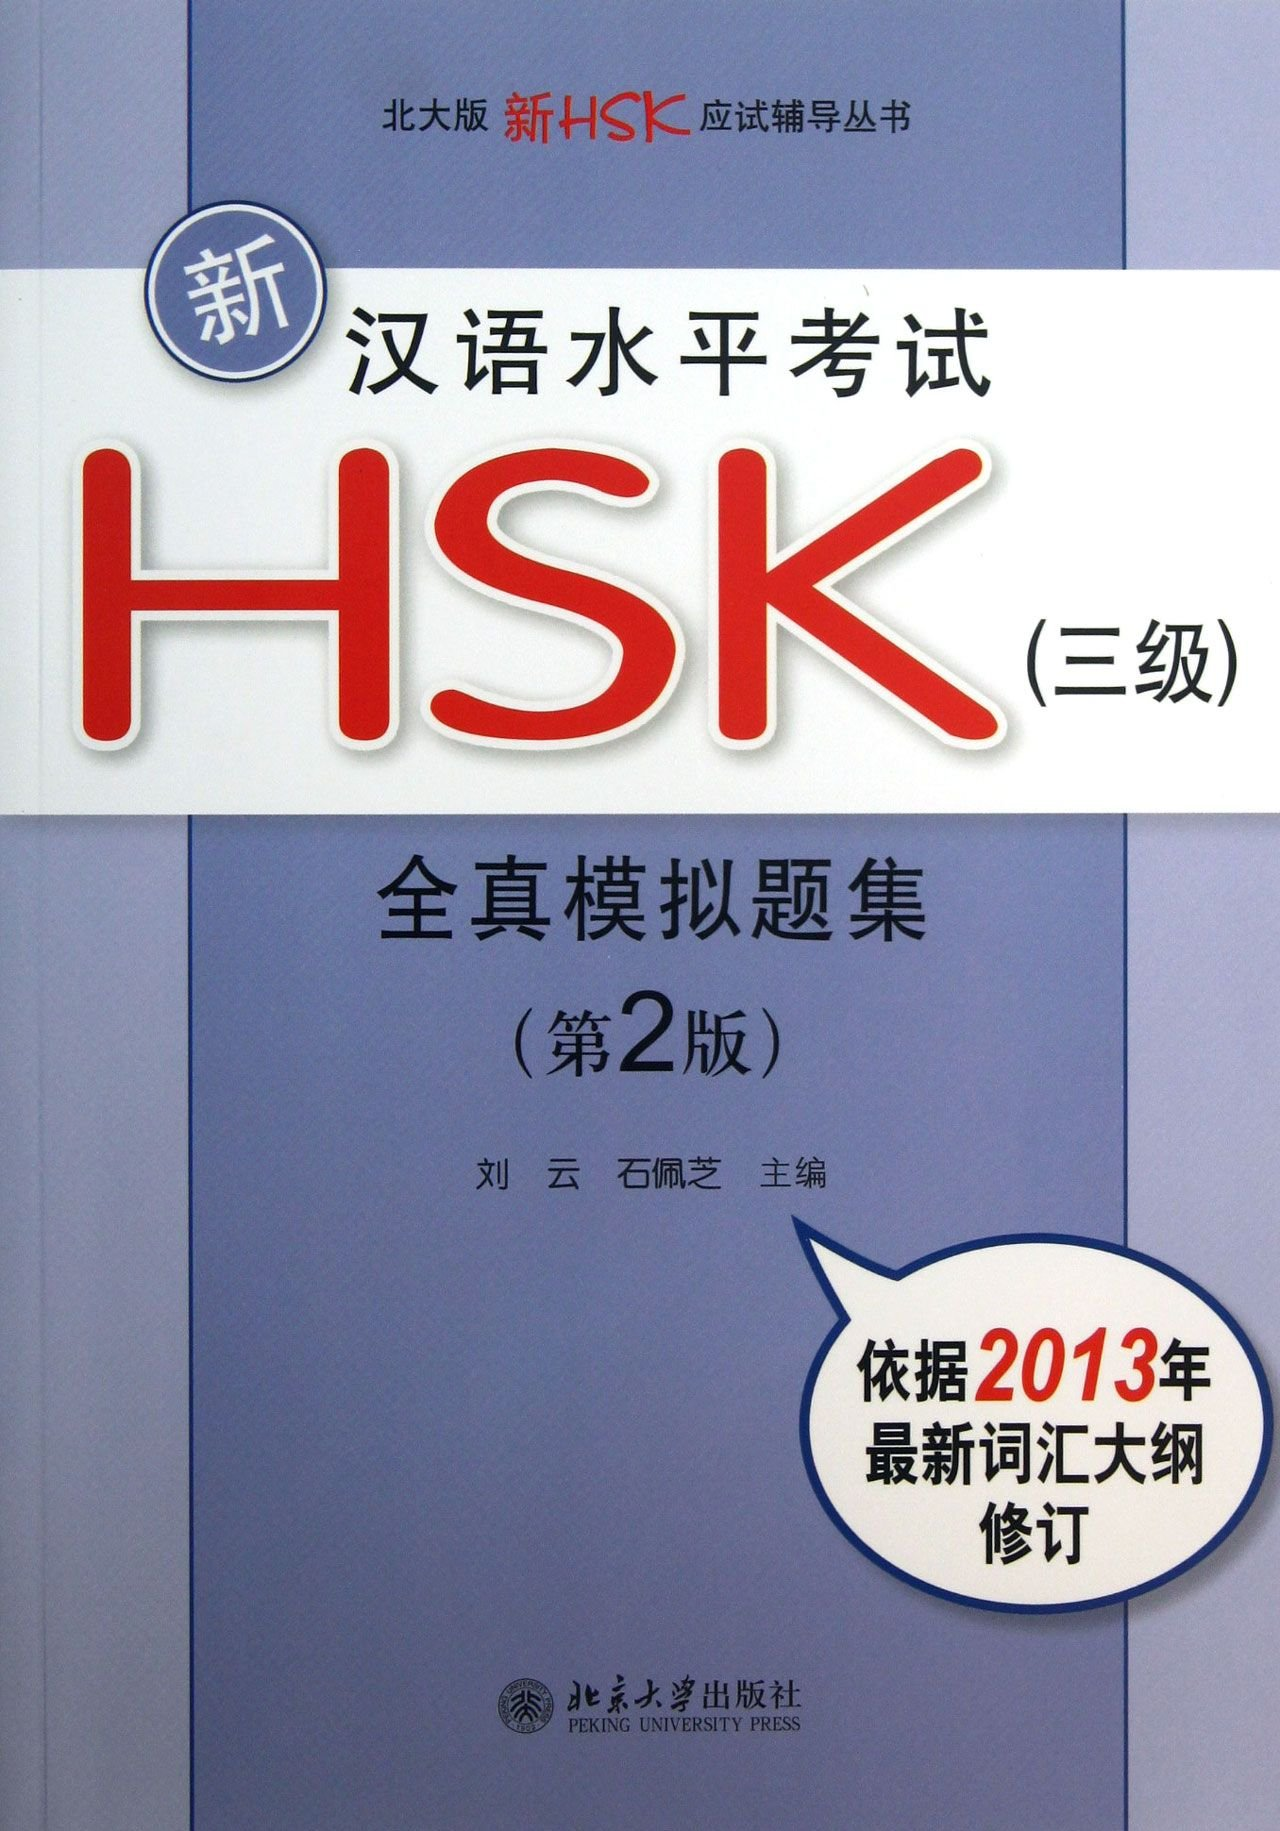 New HSK: Simulated Test Papers for Chinese Proficiency Test (Level 3) (Second Edition) (Chinese Edition) ebook